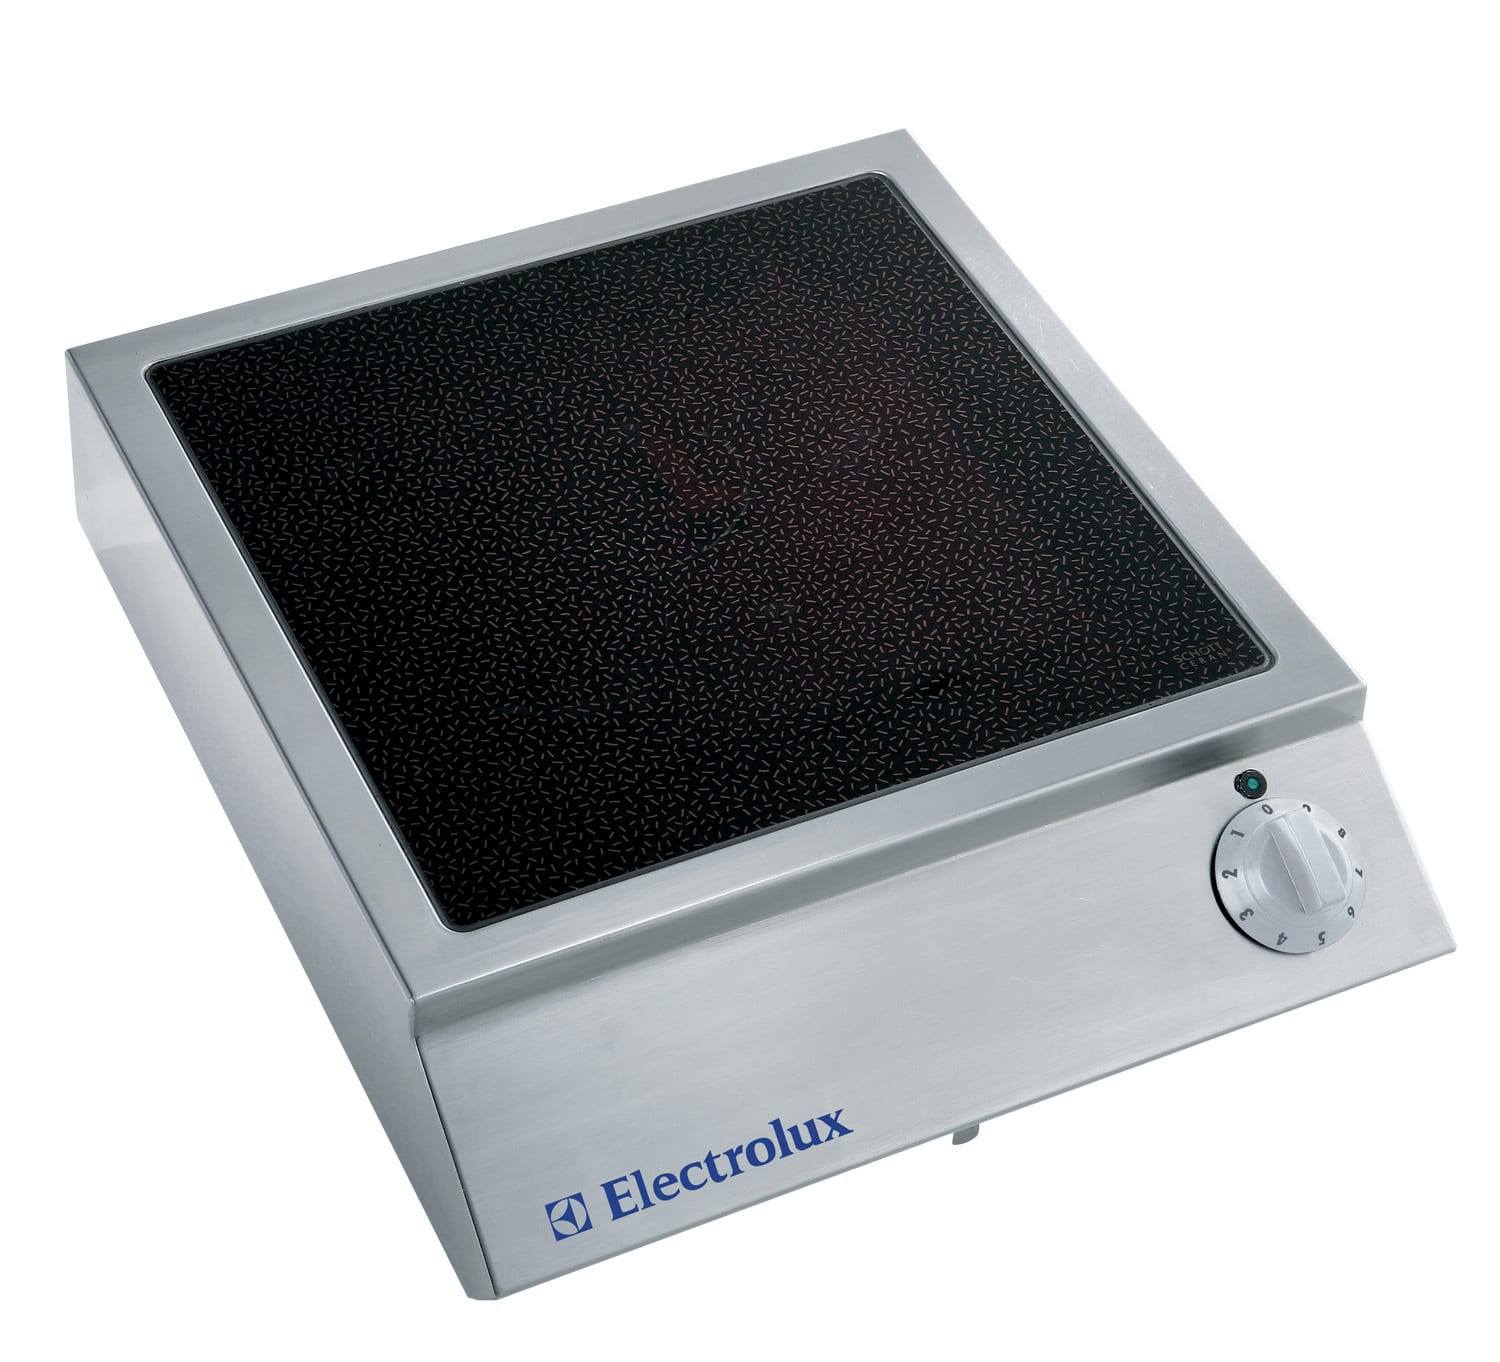 Cooking Top, Induction Single Plate Image